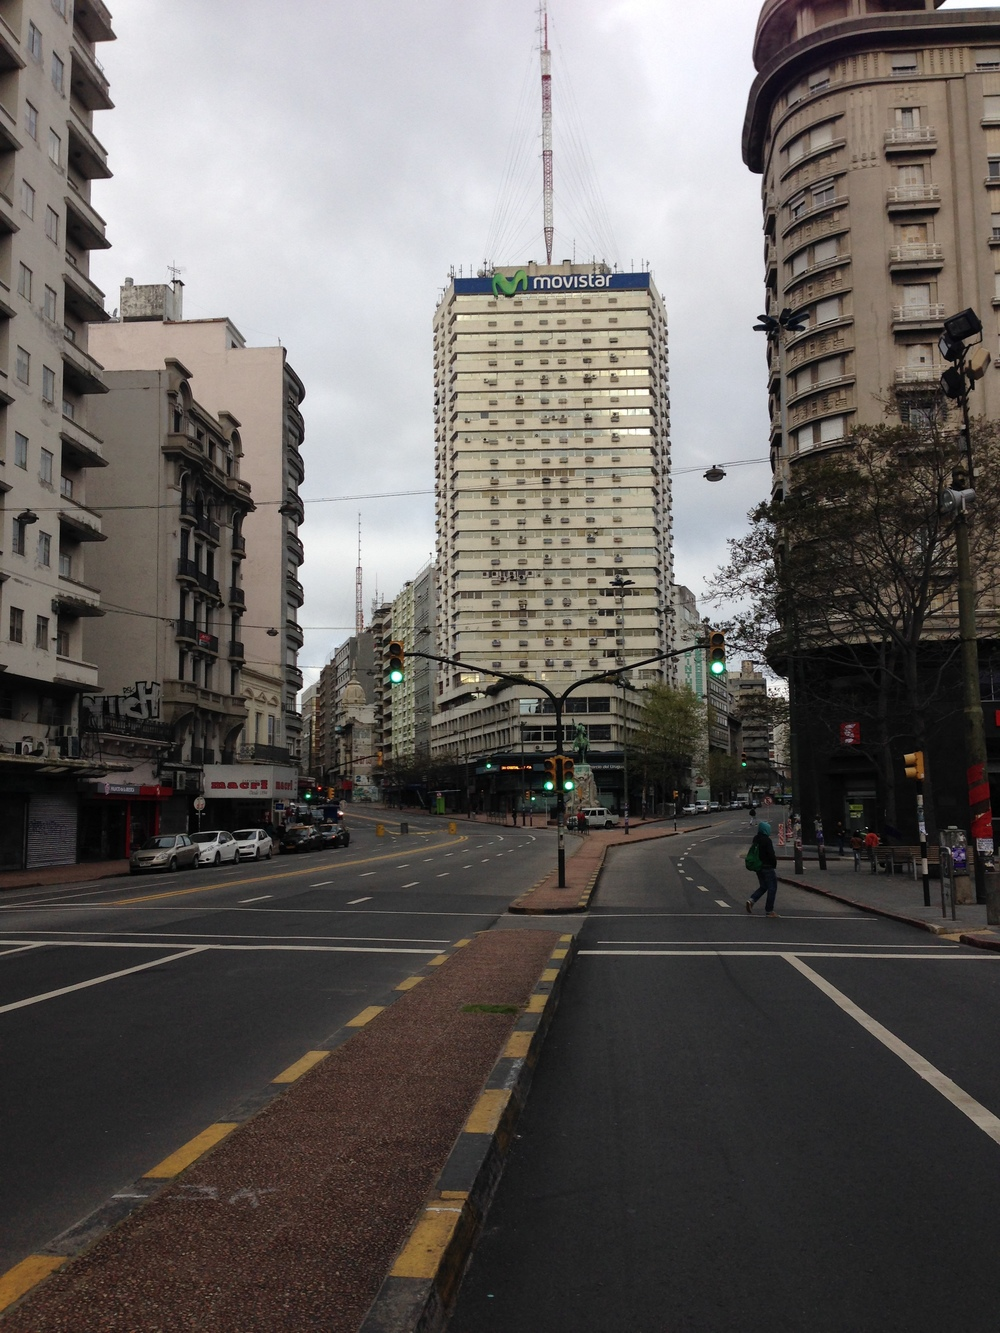 This is downtown Montevideo at 5:30 on a weekday...